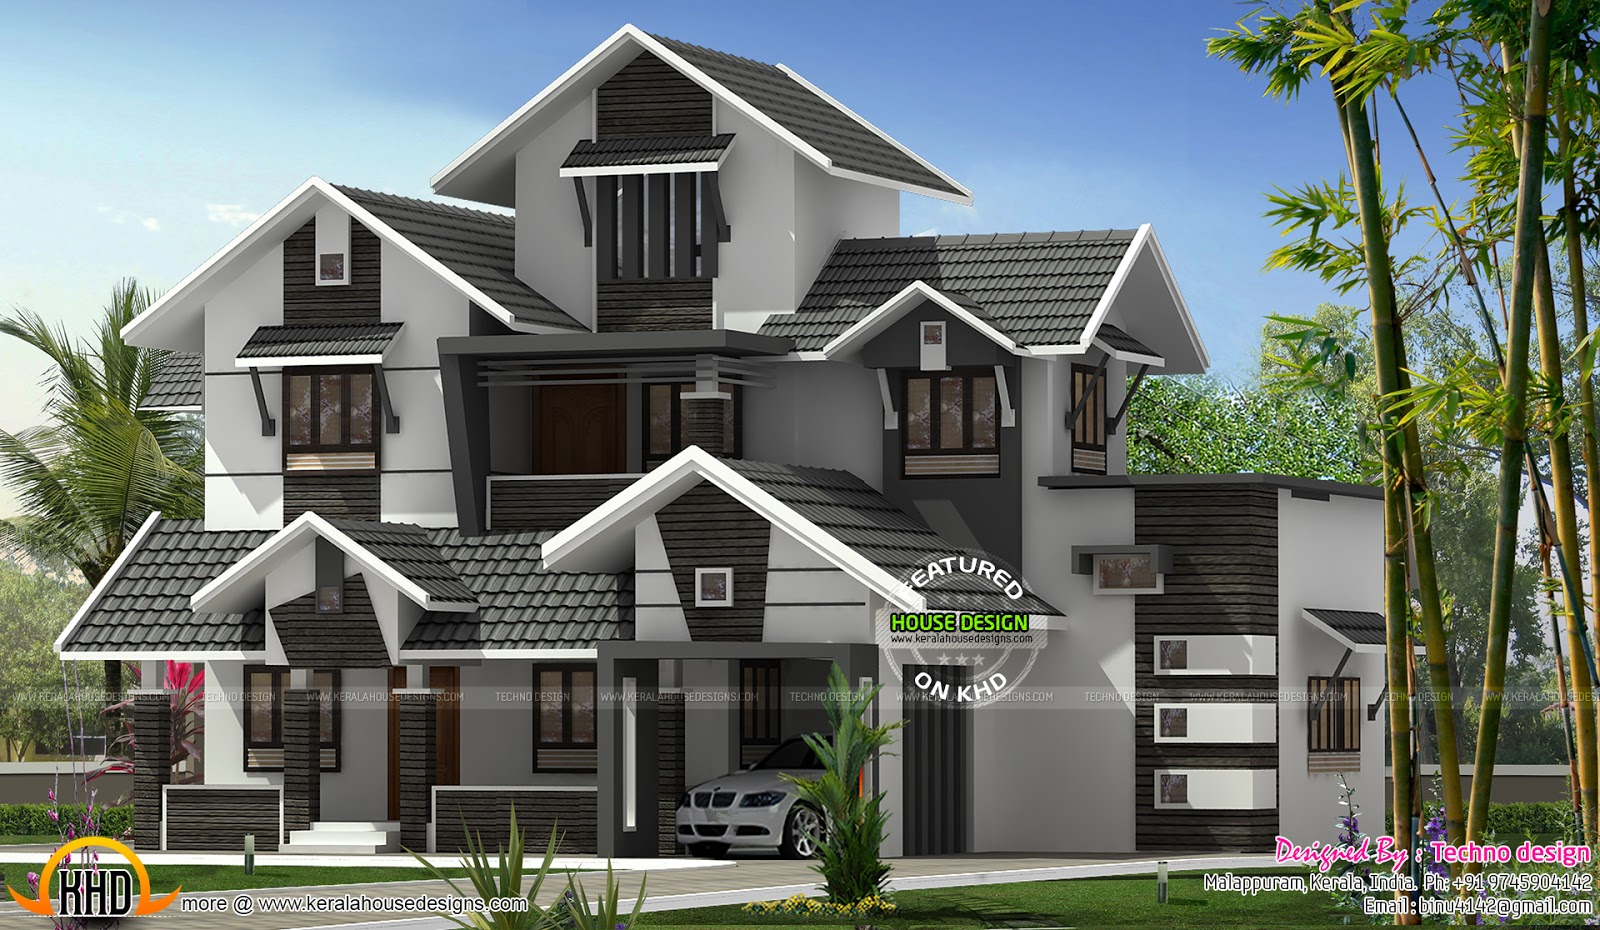 Modern kerala home design kerala home design and floor plans for Kerala style house plans with photos